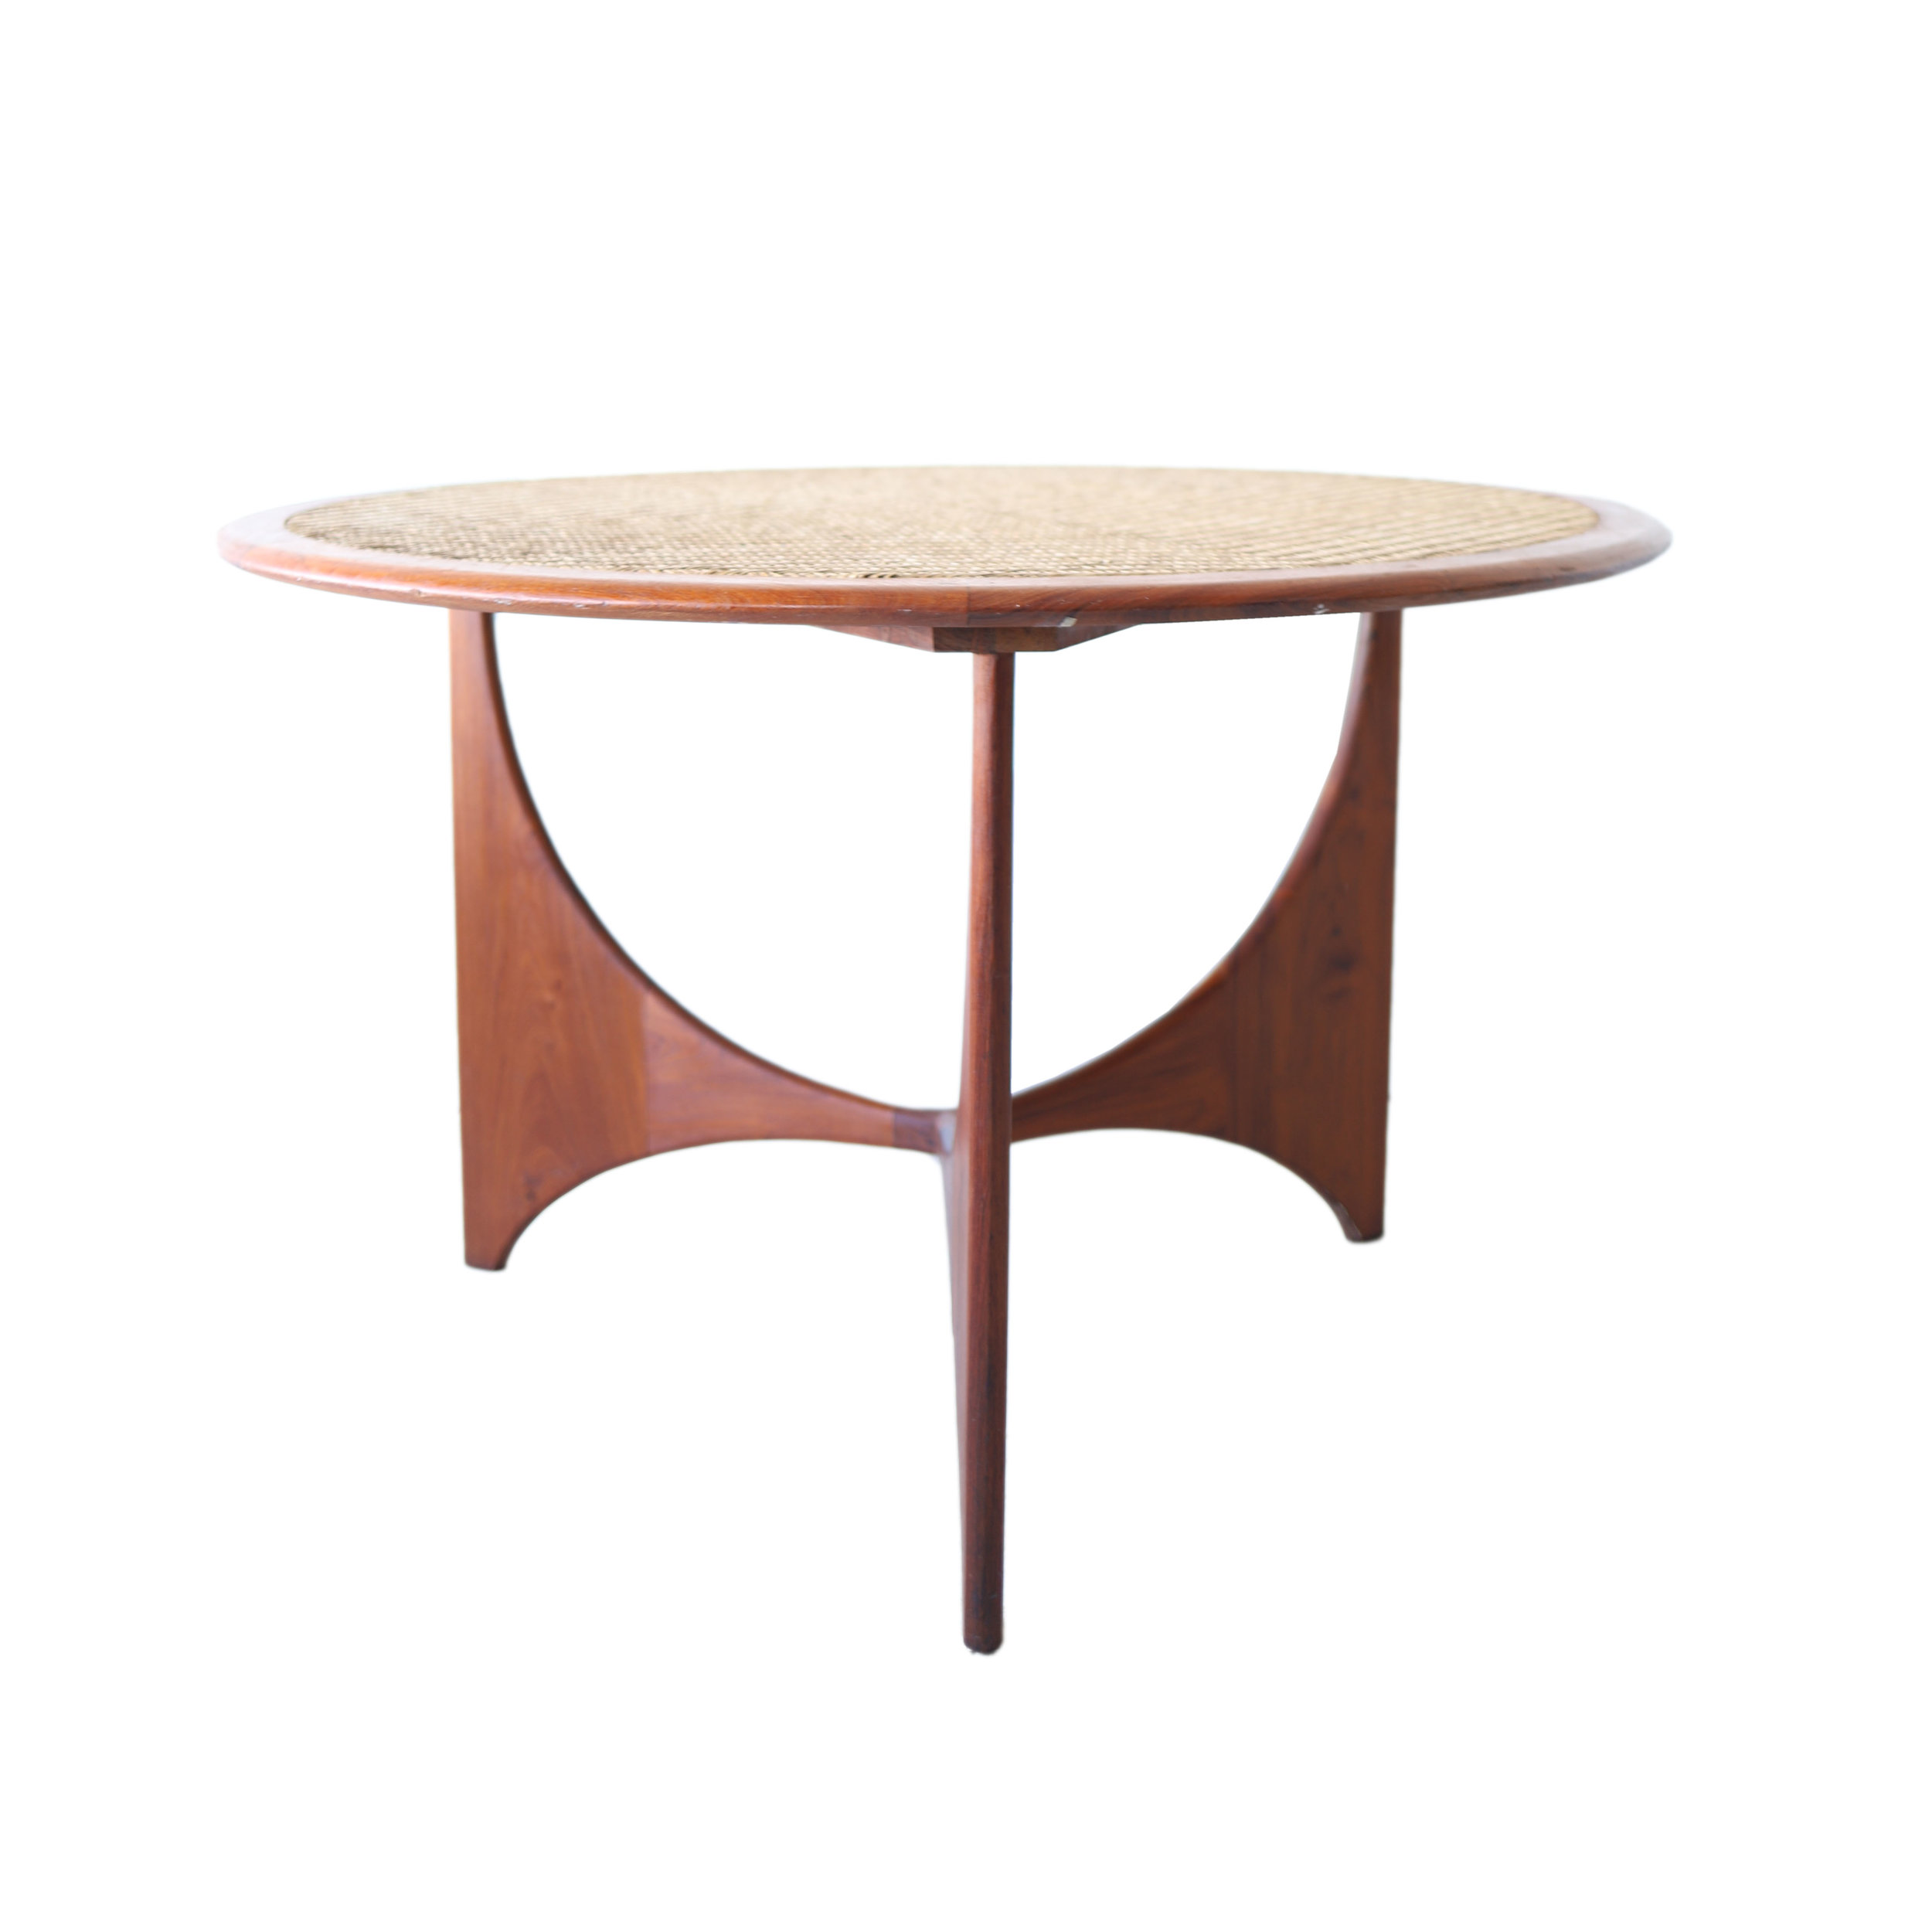 At 1st Sight Products 5 Vintage Mid Century Modern Round Rattan And Walnut Dining Table